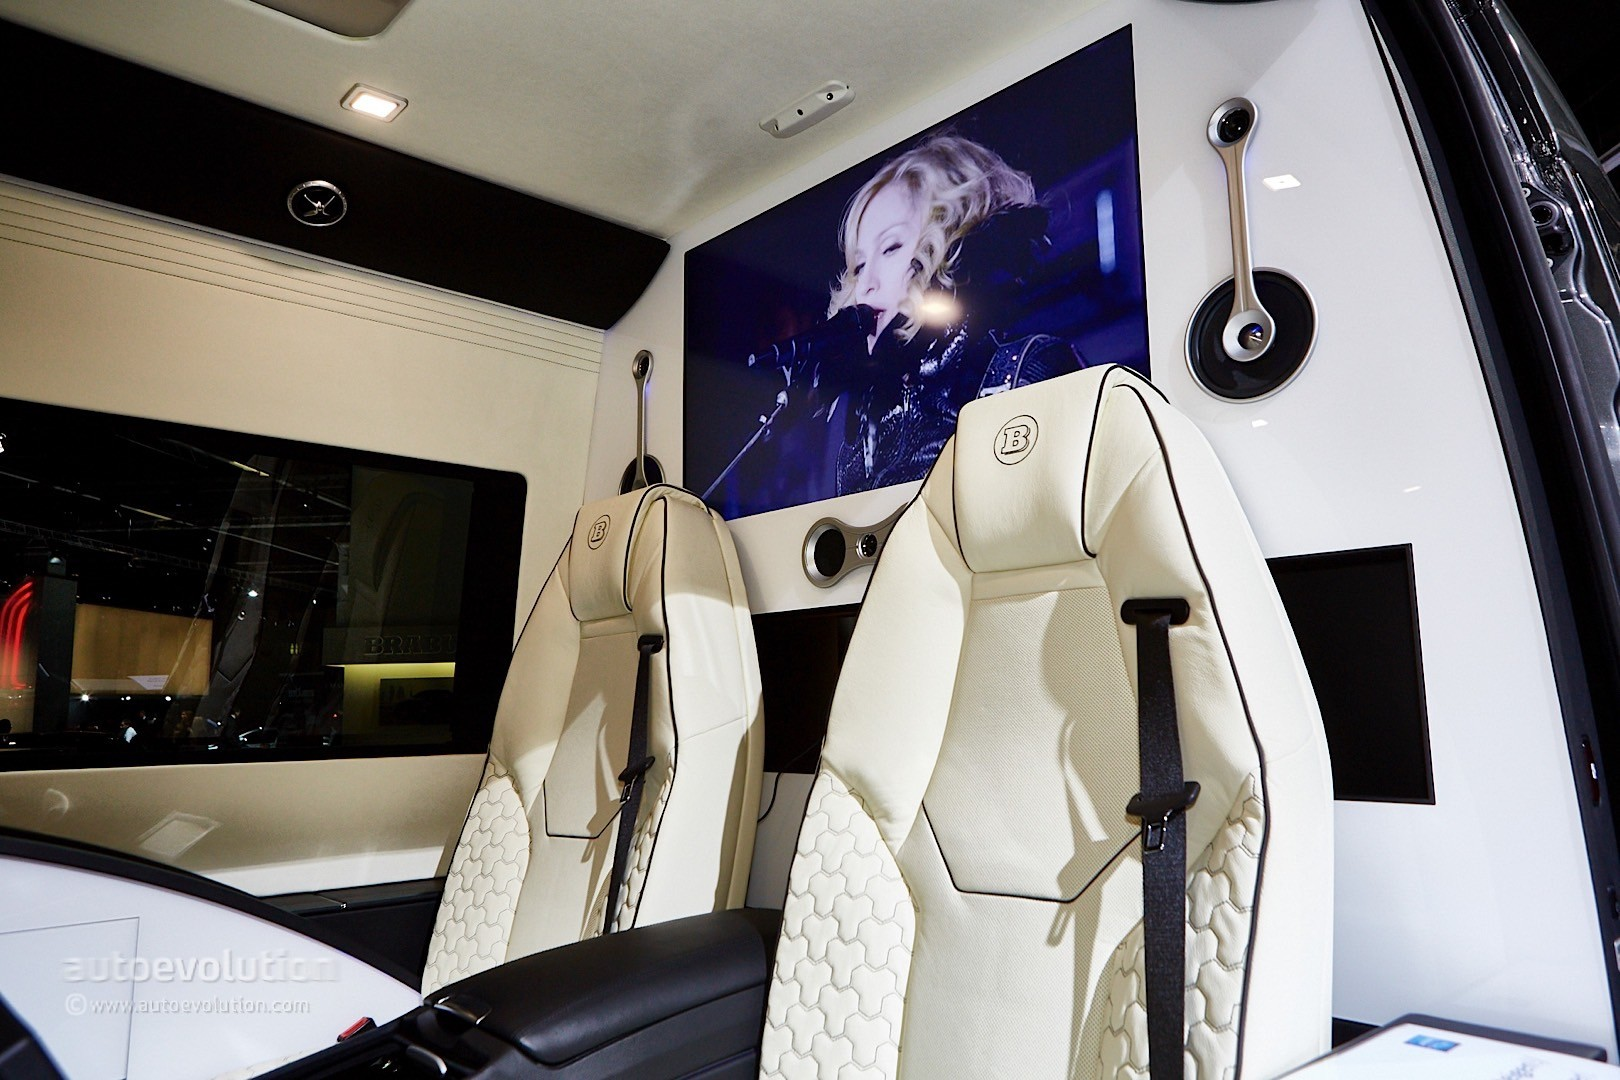 ' ' from the web at 'http://s1.cdn.autoevolution.com/images/news/gallery/brabus-sprinter-and-v-class-fill-the-luxury-van-gap-in-frankfurt-live-photos_8.jpg'